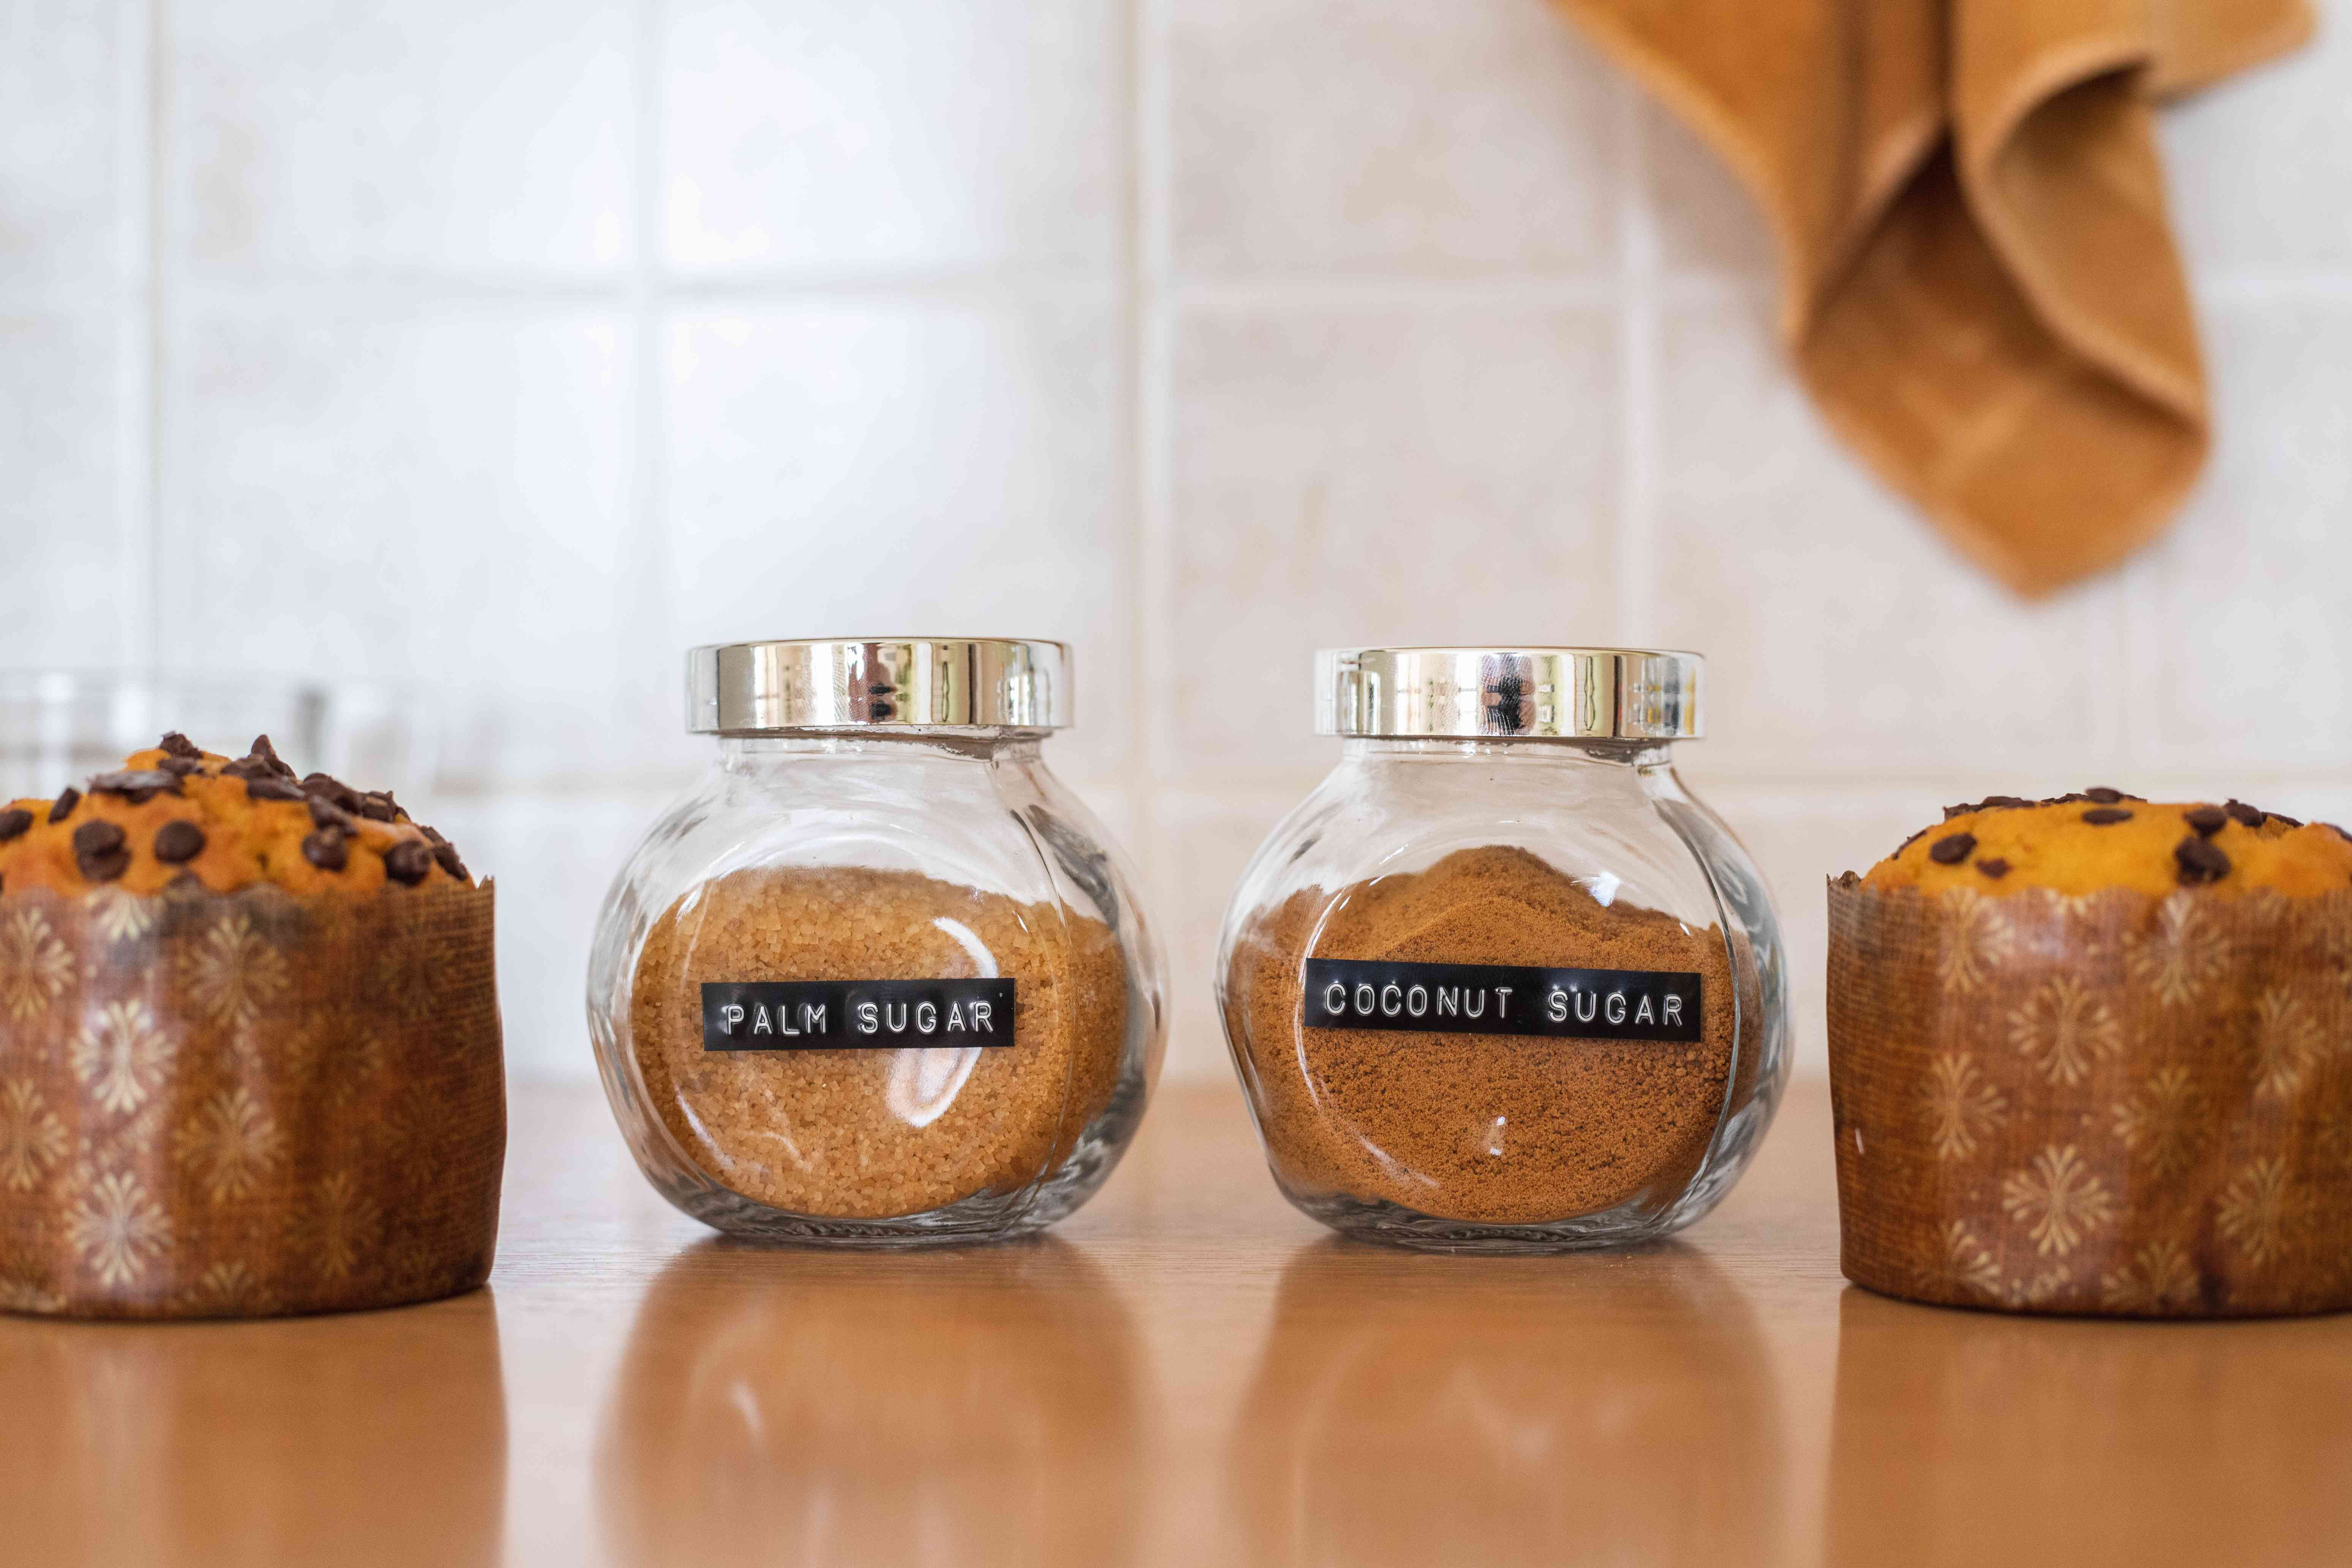 glass dispensers of brown coconut and palm sugars next to chocolate chip muffins